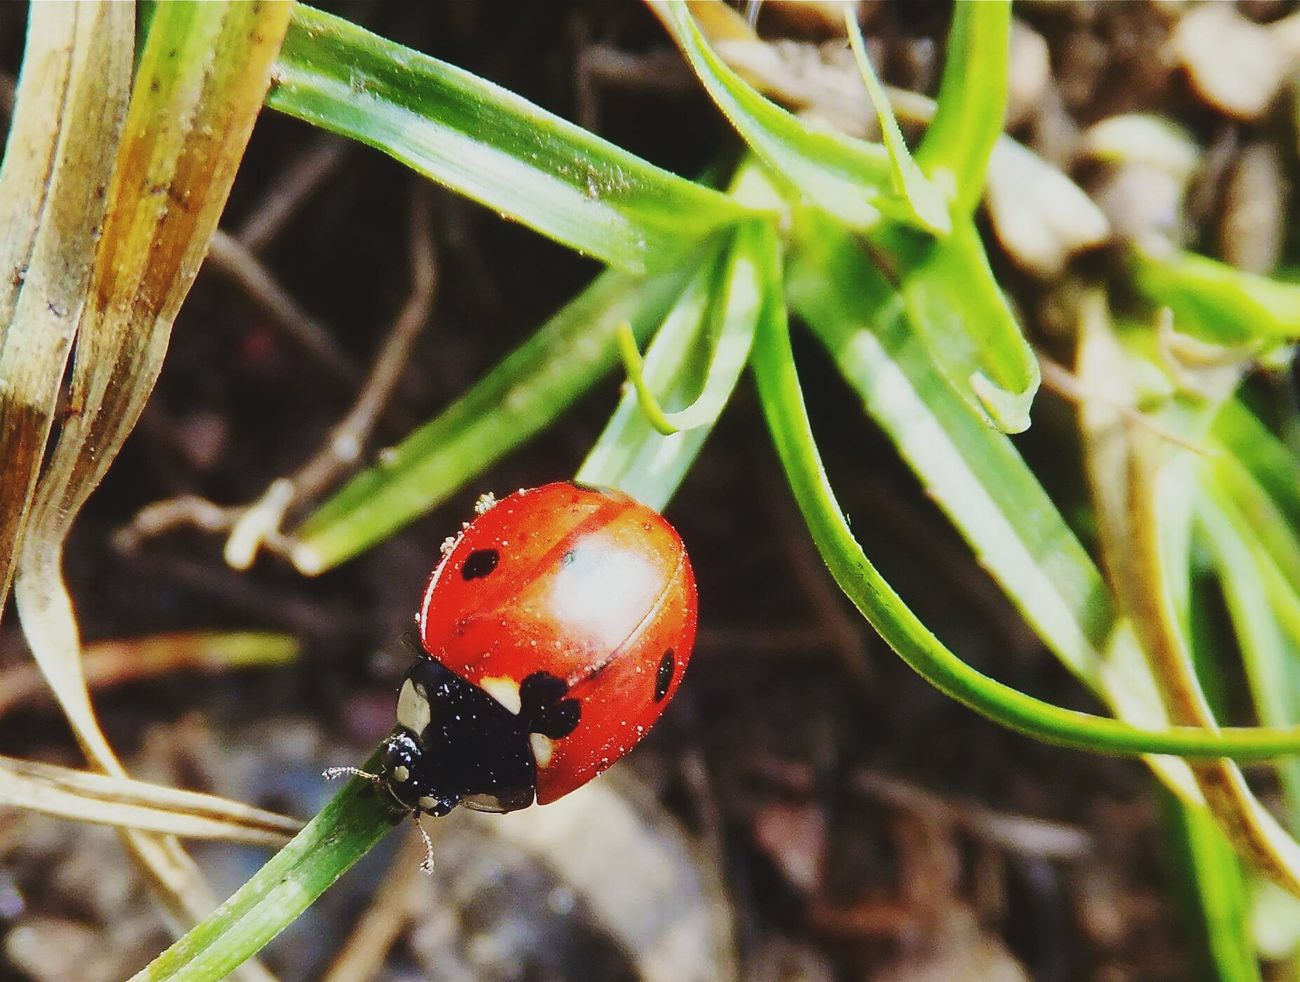 Maximum Closeness Ladybug Close-up Insect Beauty In Nature Fragility Grass Blades Outdoors Peace And Quiet I Love Nature Inspiration Life Lovely Day Tranquility Ladybugmacro